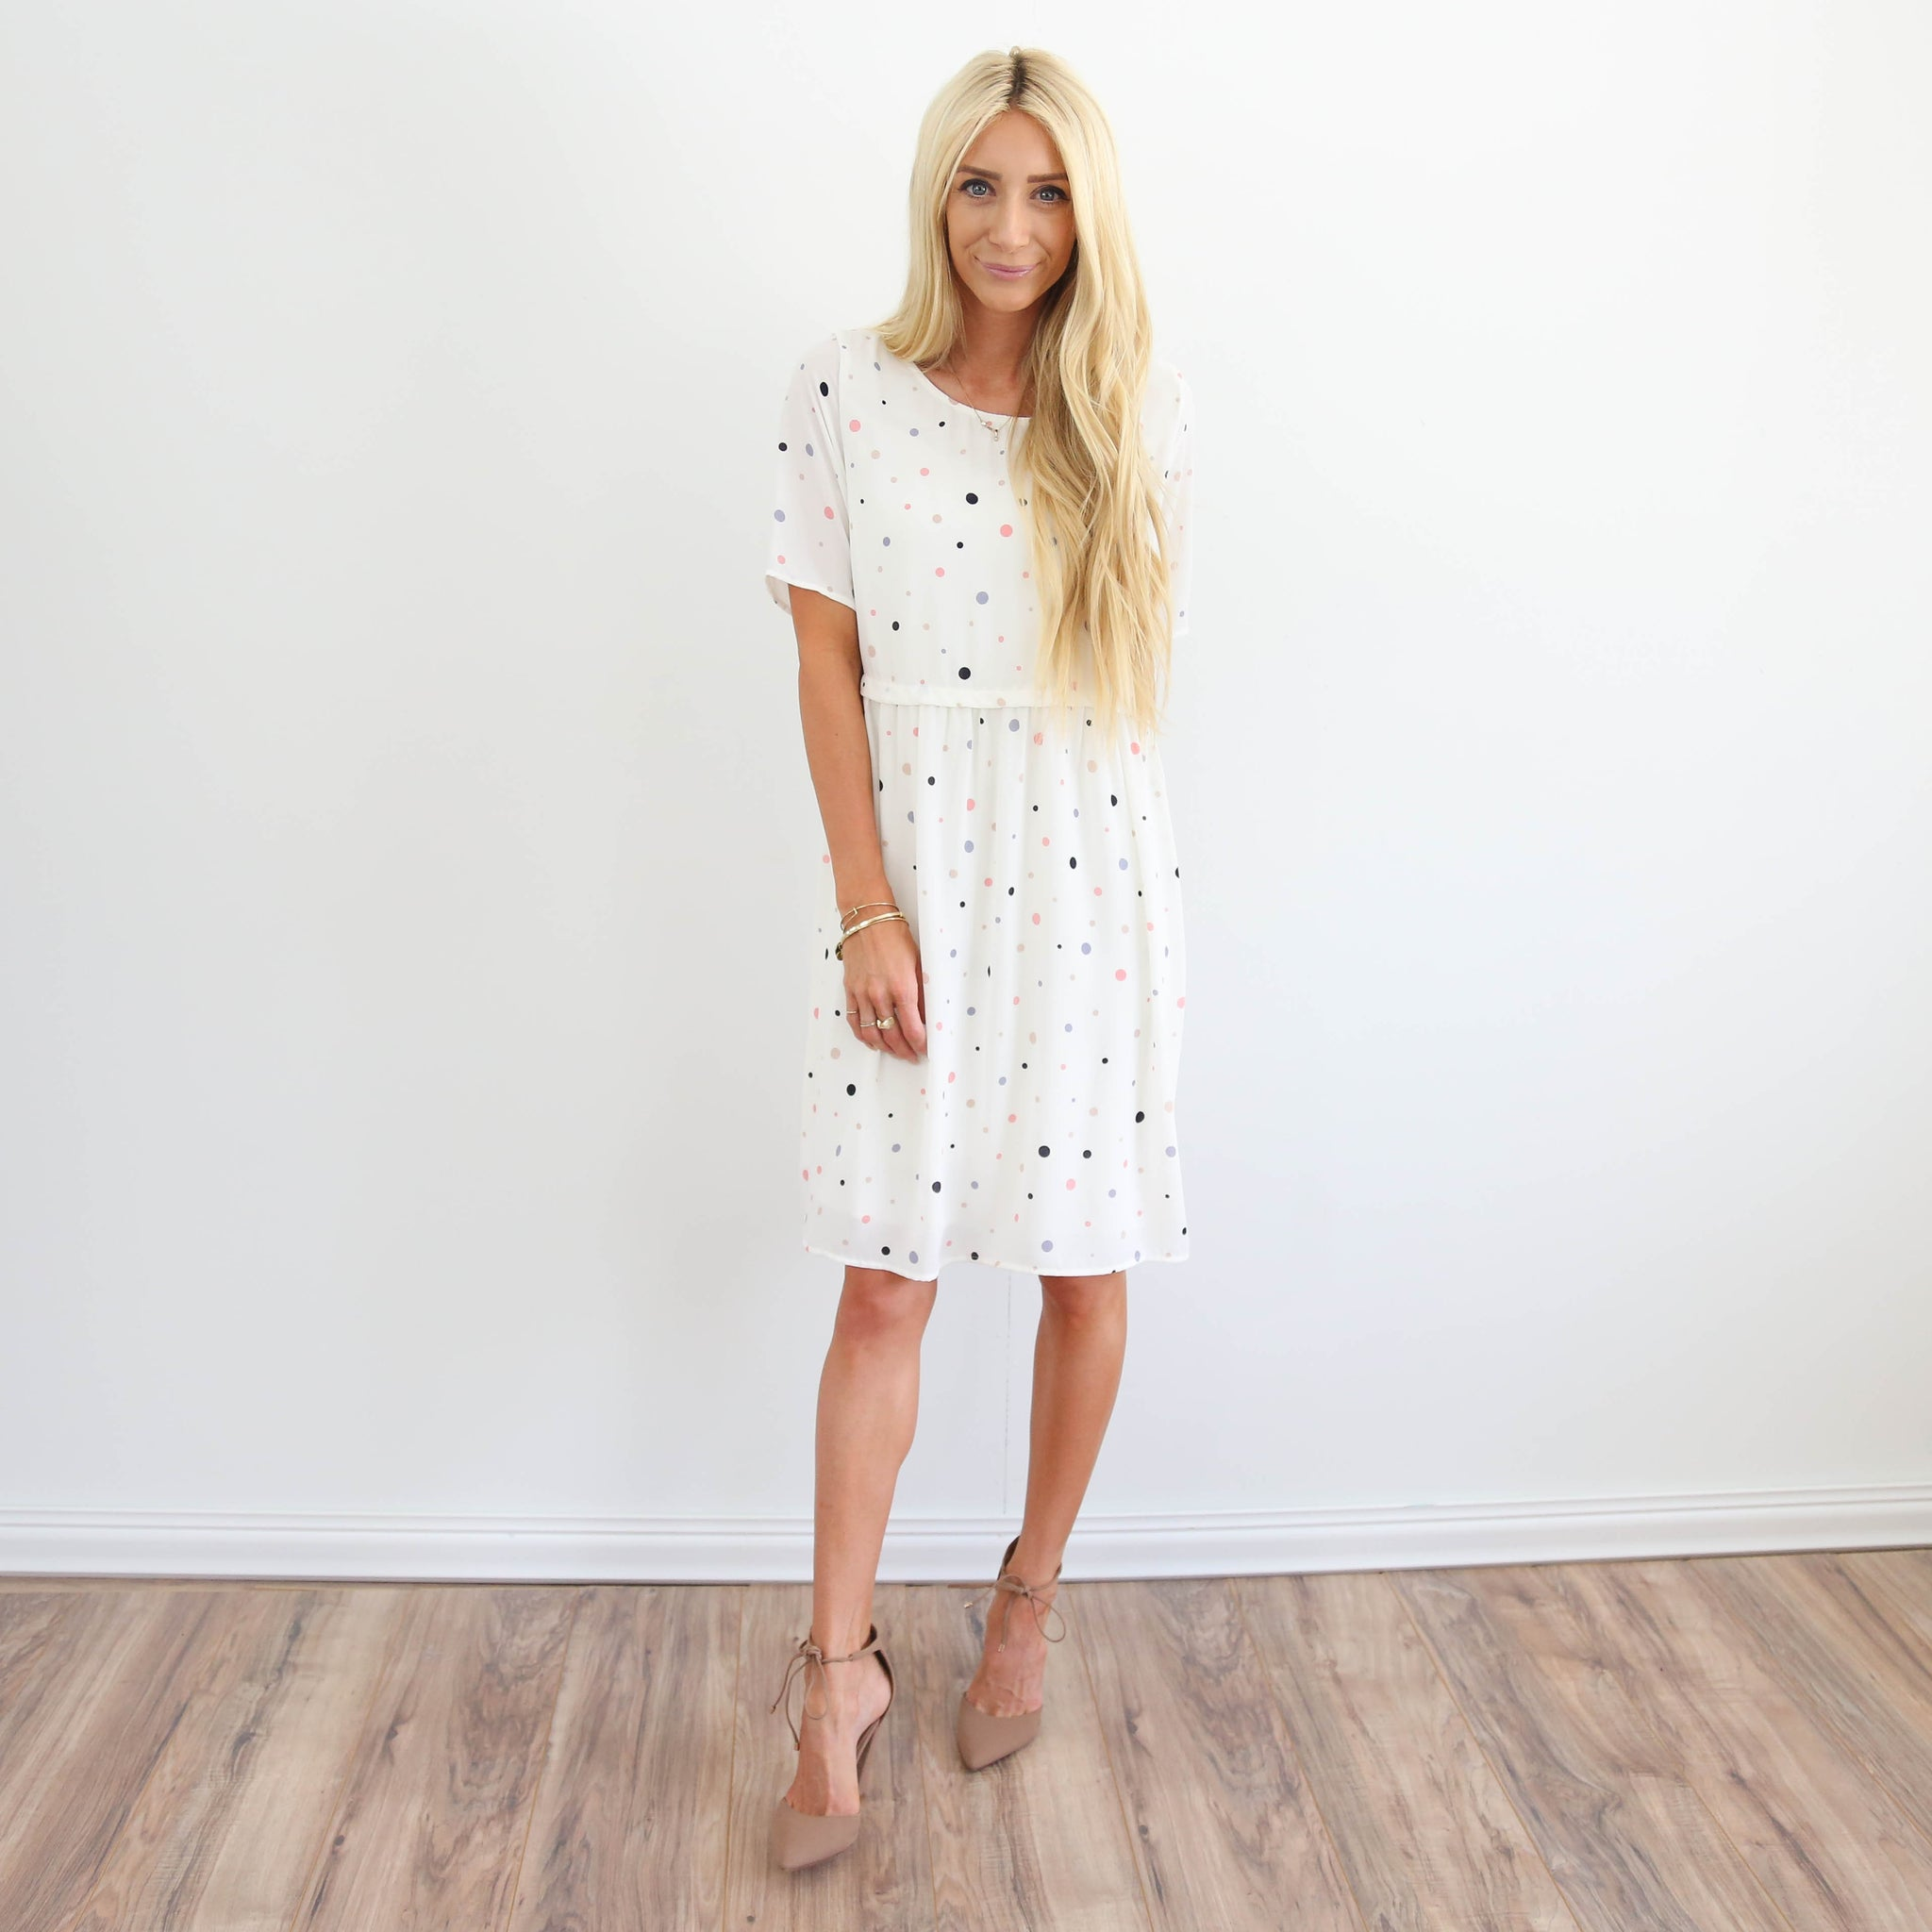 S & Co. Polka Dot Dress